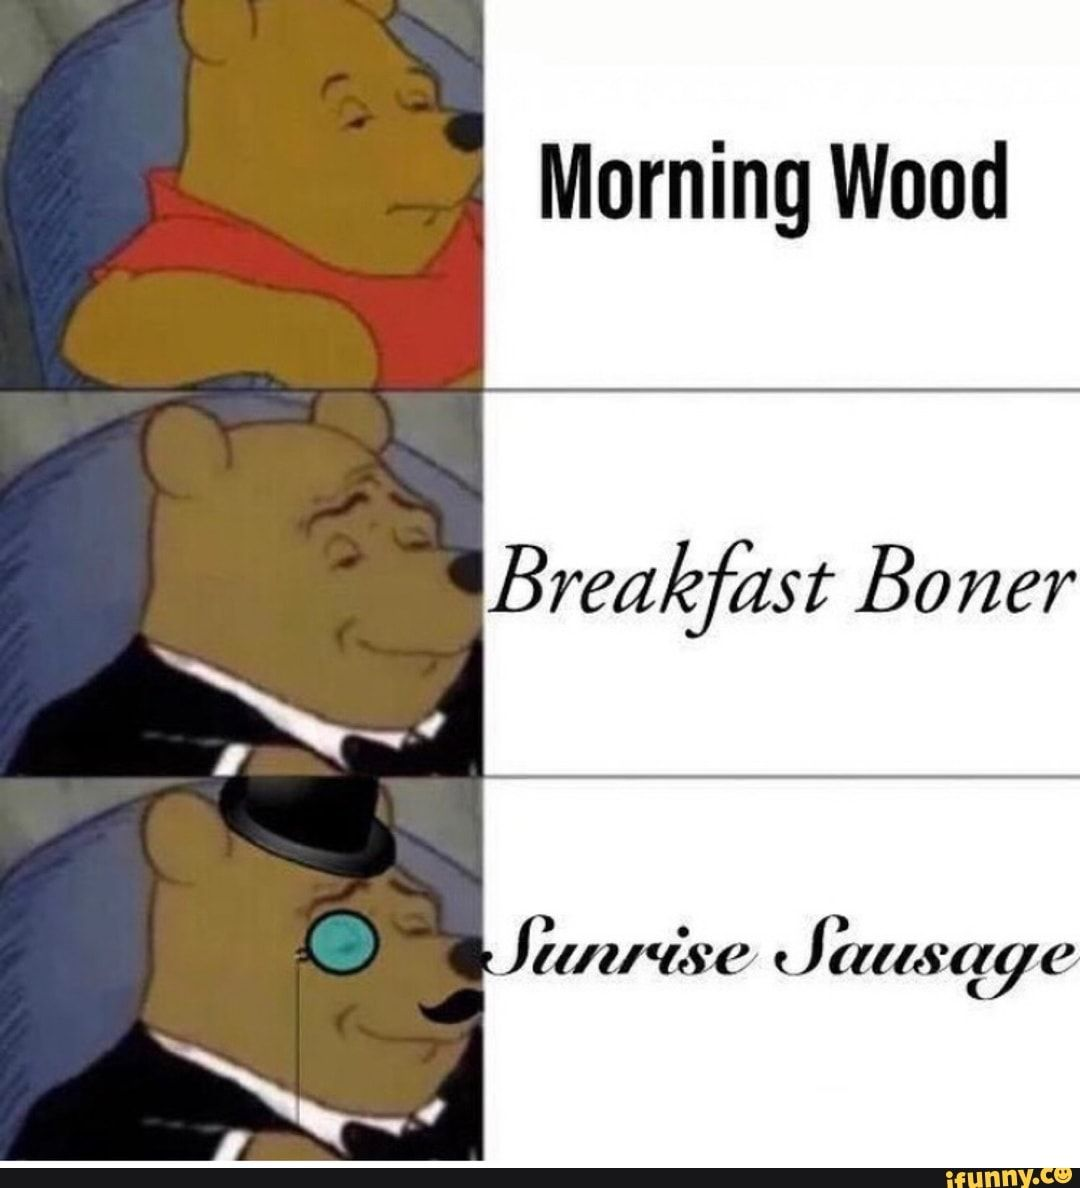 Morning Wood Breakfilst Ifunny Stupid Funny Memes Winnie The Pooh Memes Funny Relatable Memes